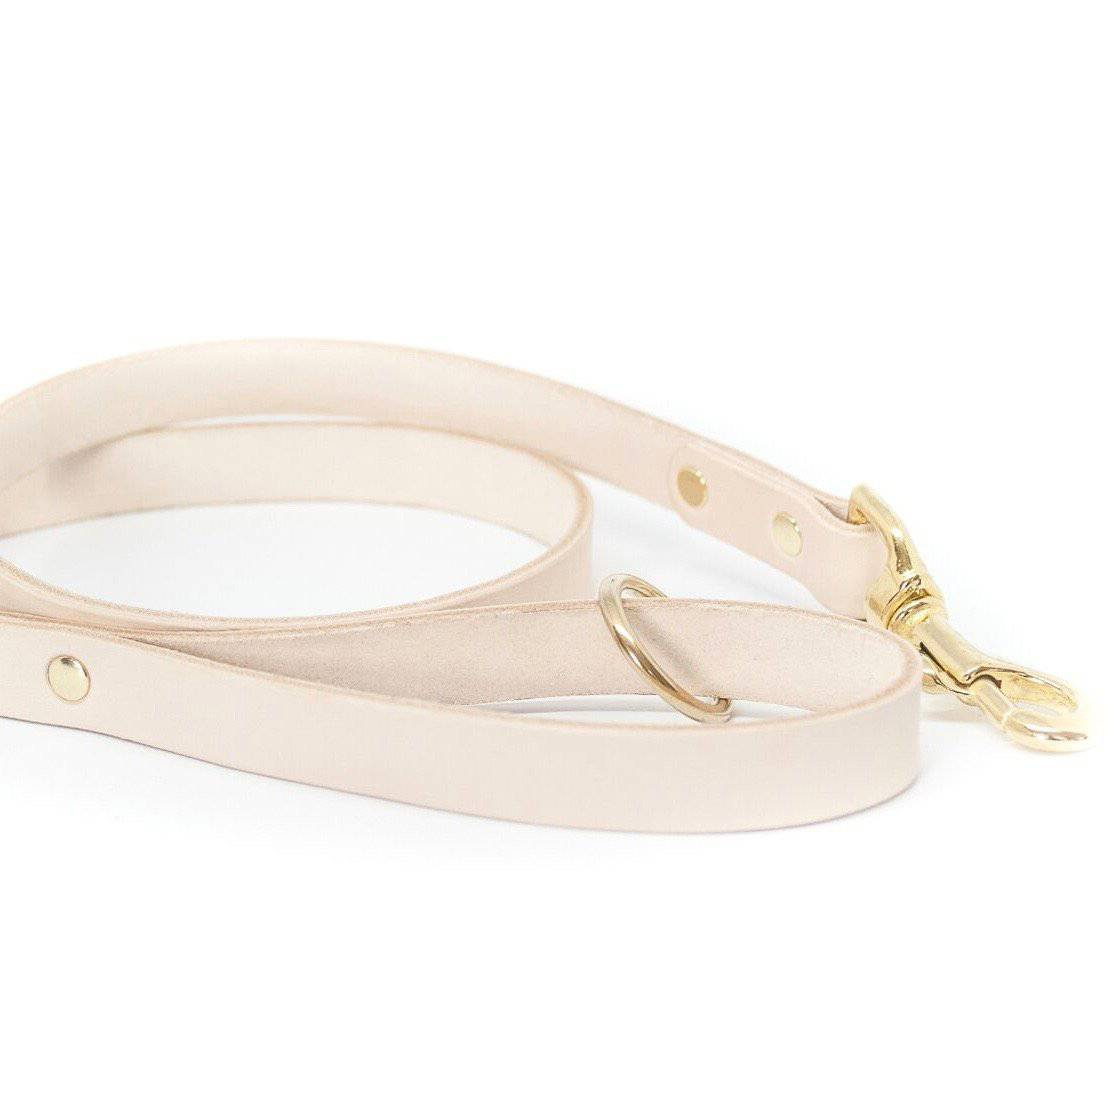 Nude - Classic Leather Lead - Holler Brighton